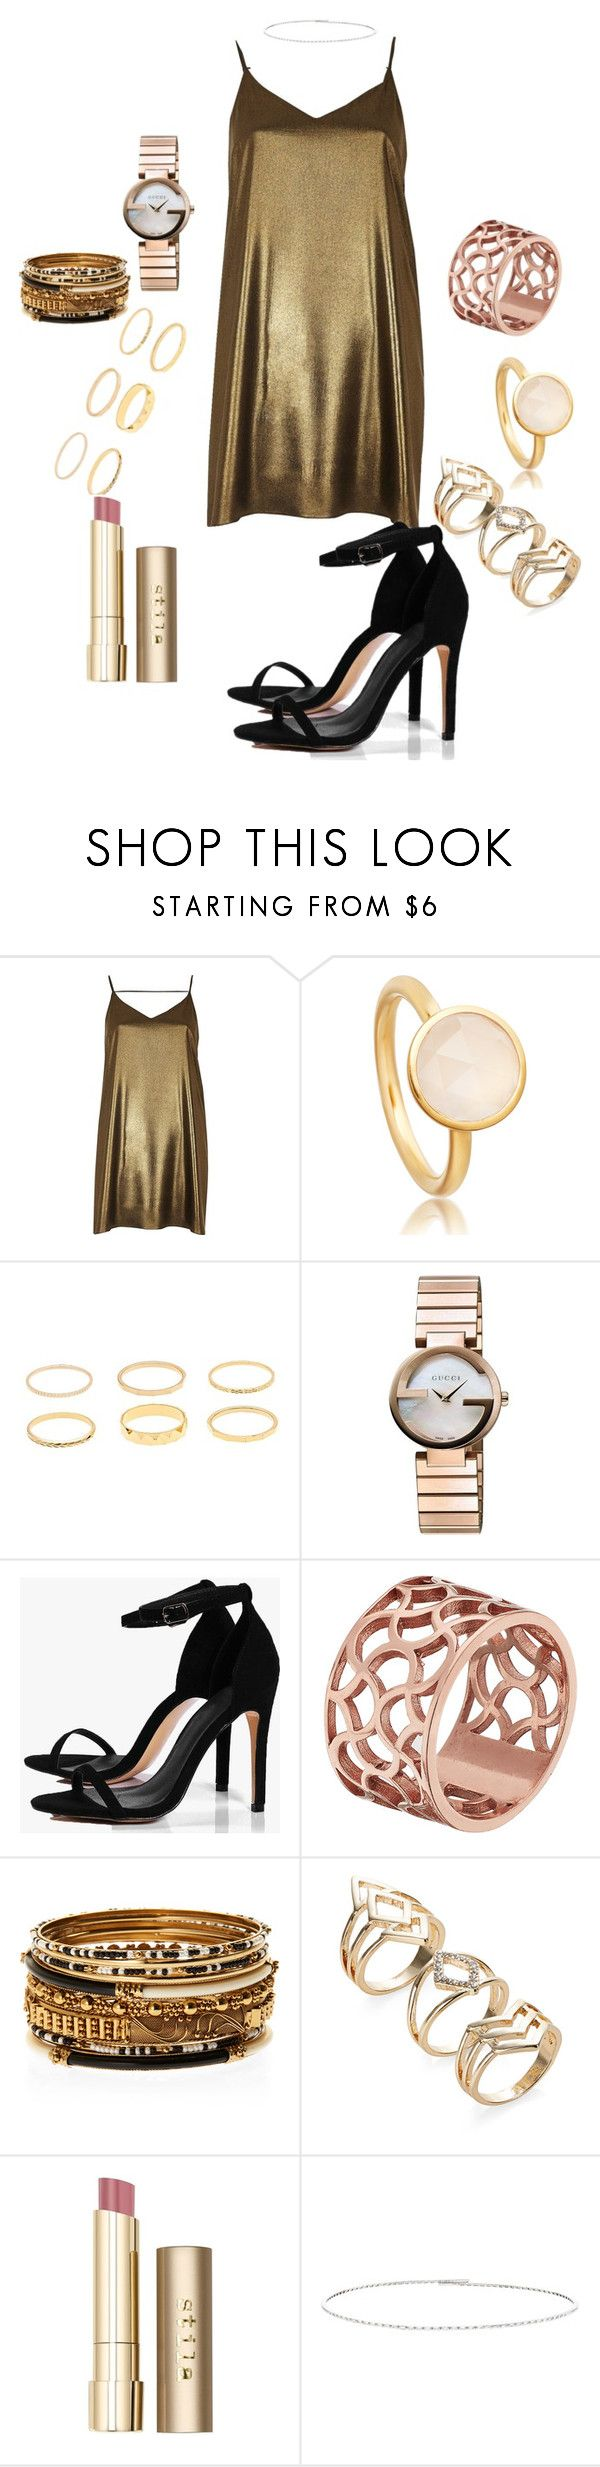 """""""n"""" by laluneee ❤ liked on Polyvore featuring River Island, Gucci, Boohoo, Tartesia, Amrita Singh, Stila and Suzanne Kalan"""